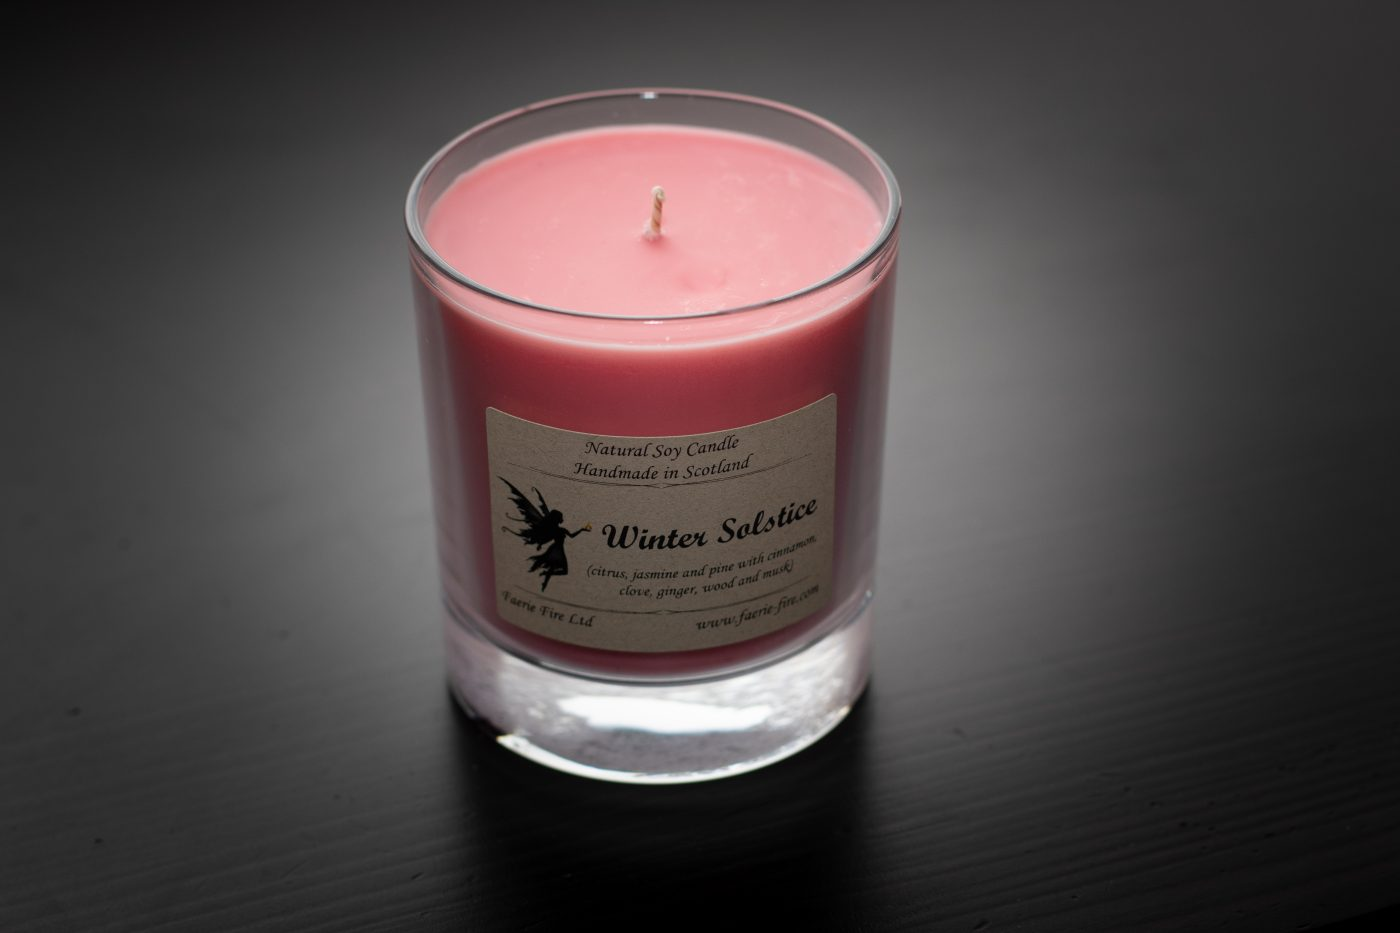 Winter Solstice Soy Wax Jar Candle scaled